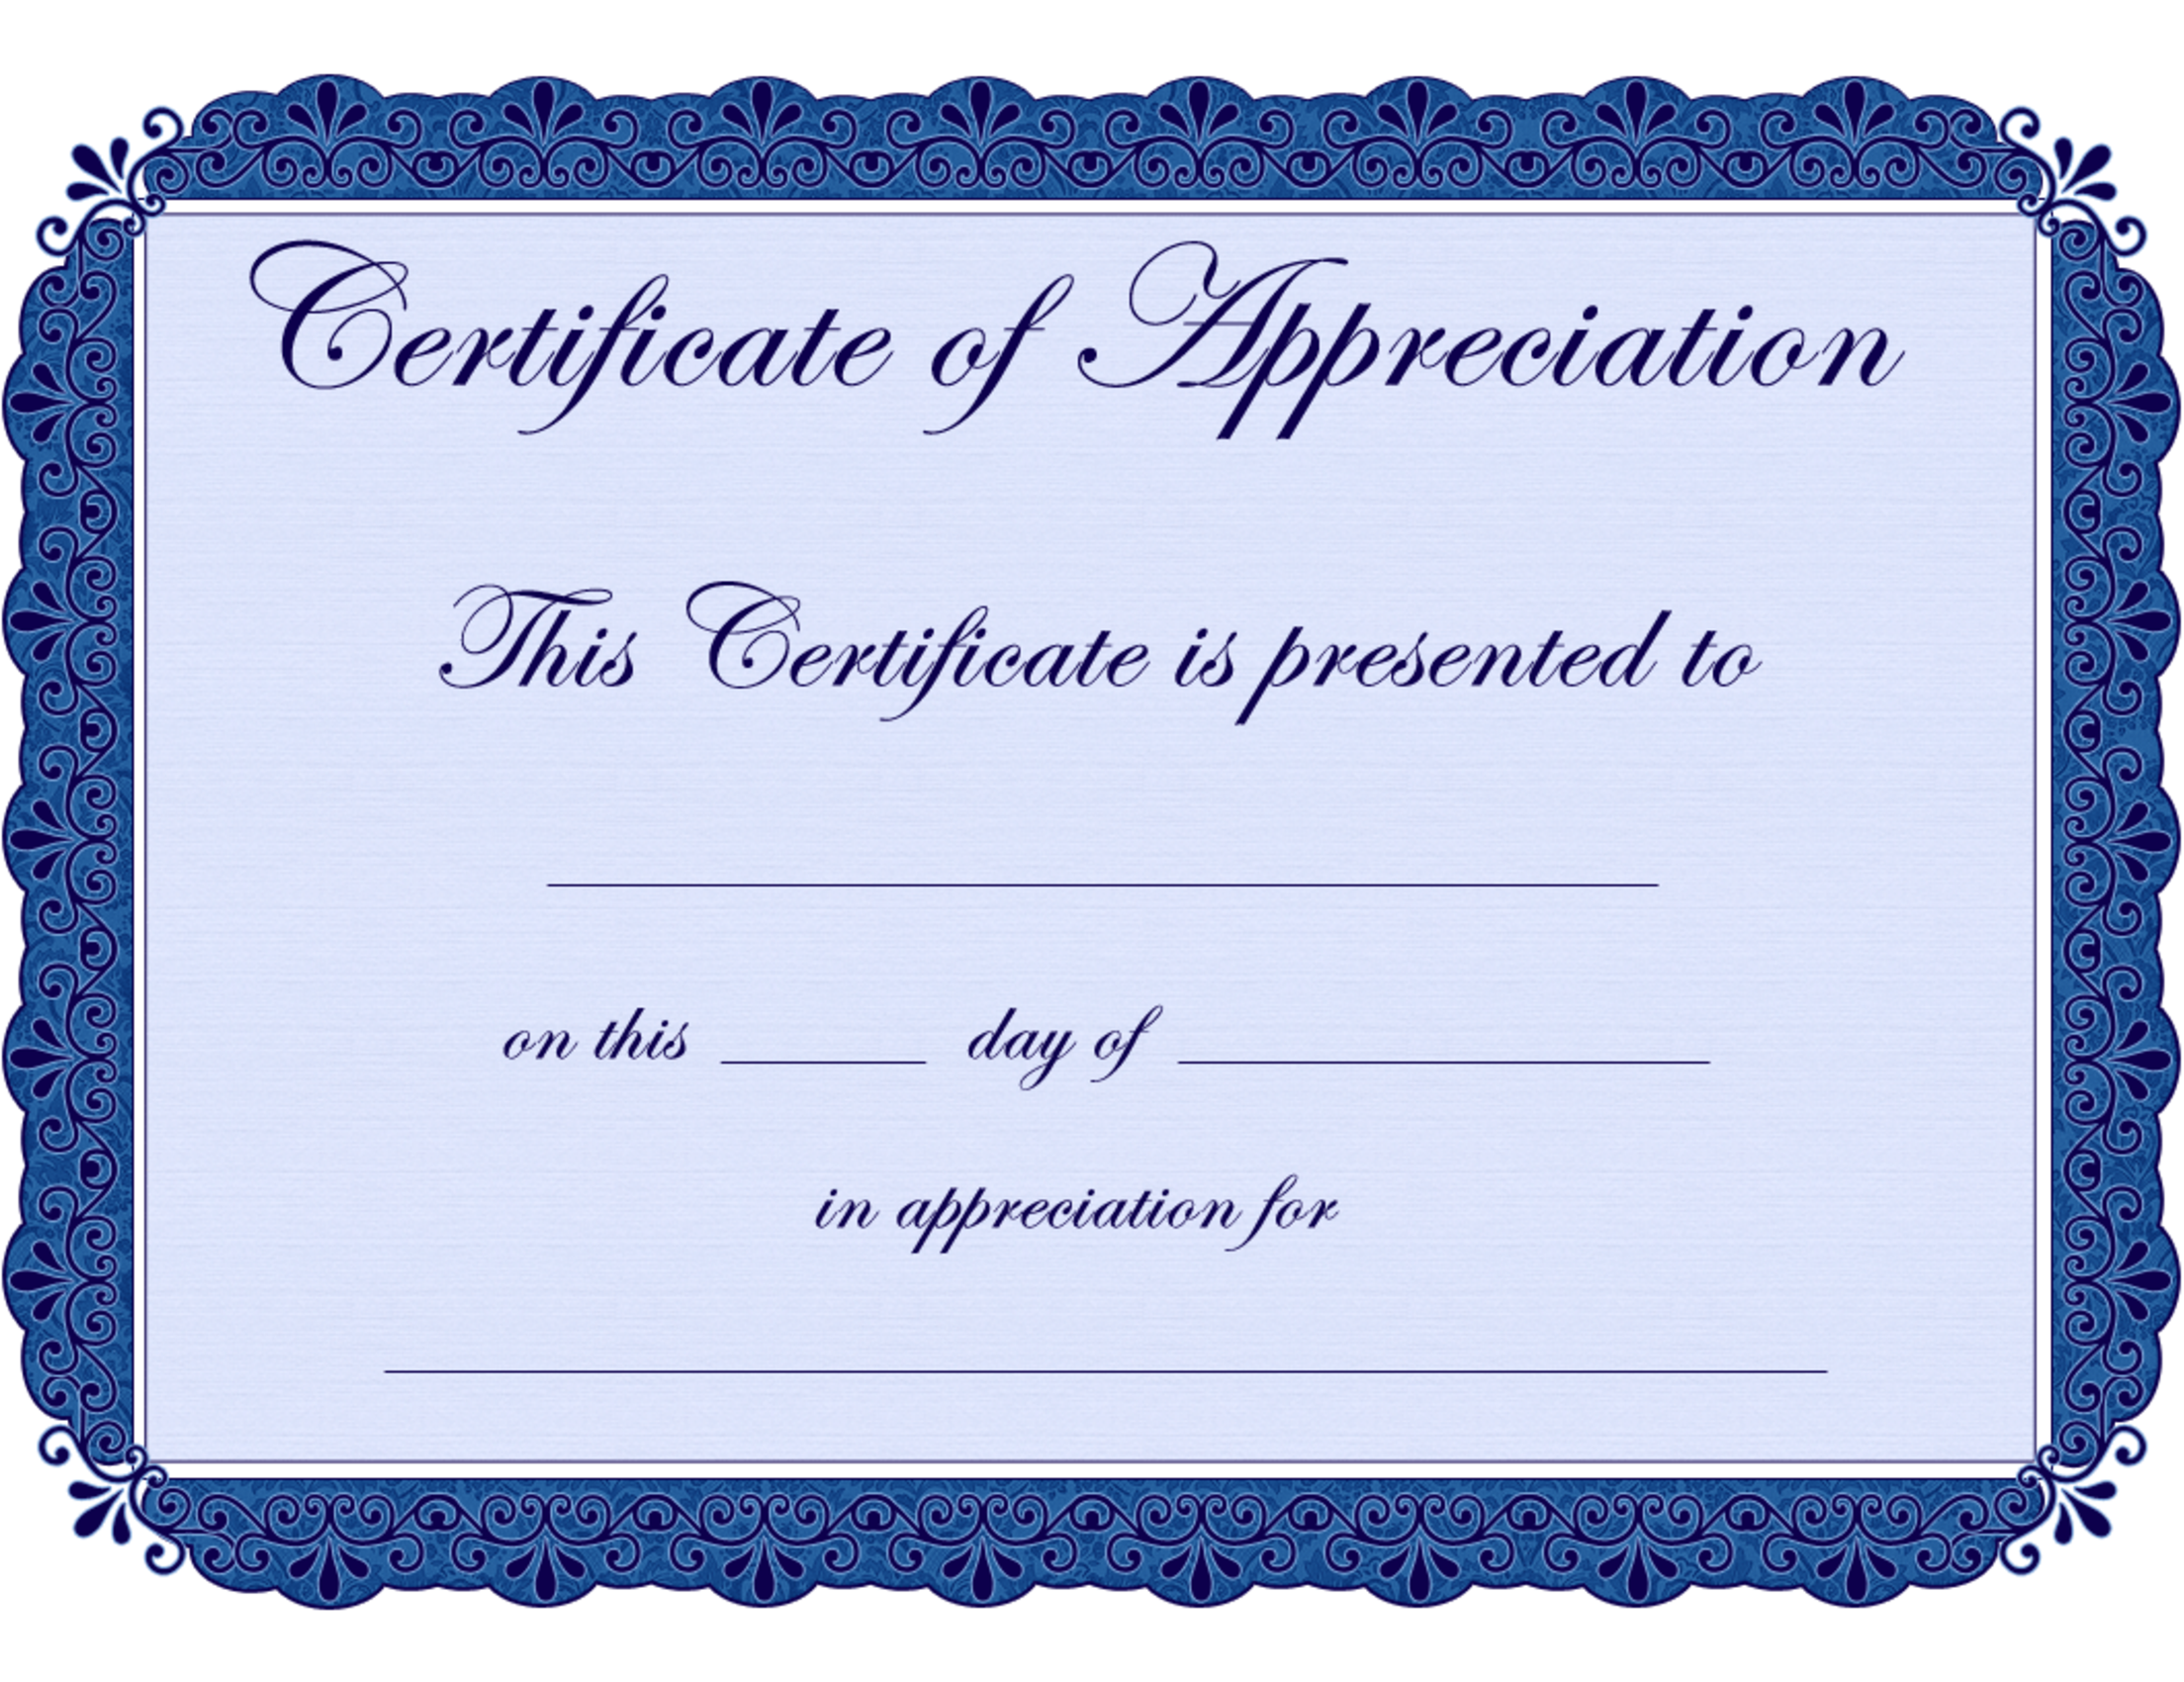 Attractive Free Printable Certificates Certificate Of Appreciation Certificate ... |  Certificate Of Appreciation | Pinterest | Free Printable Certificates, ...  Certificate Of Appreciation Word Template